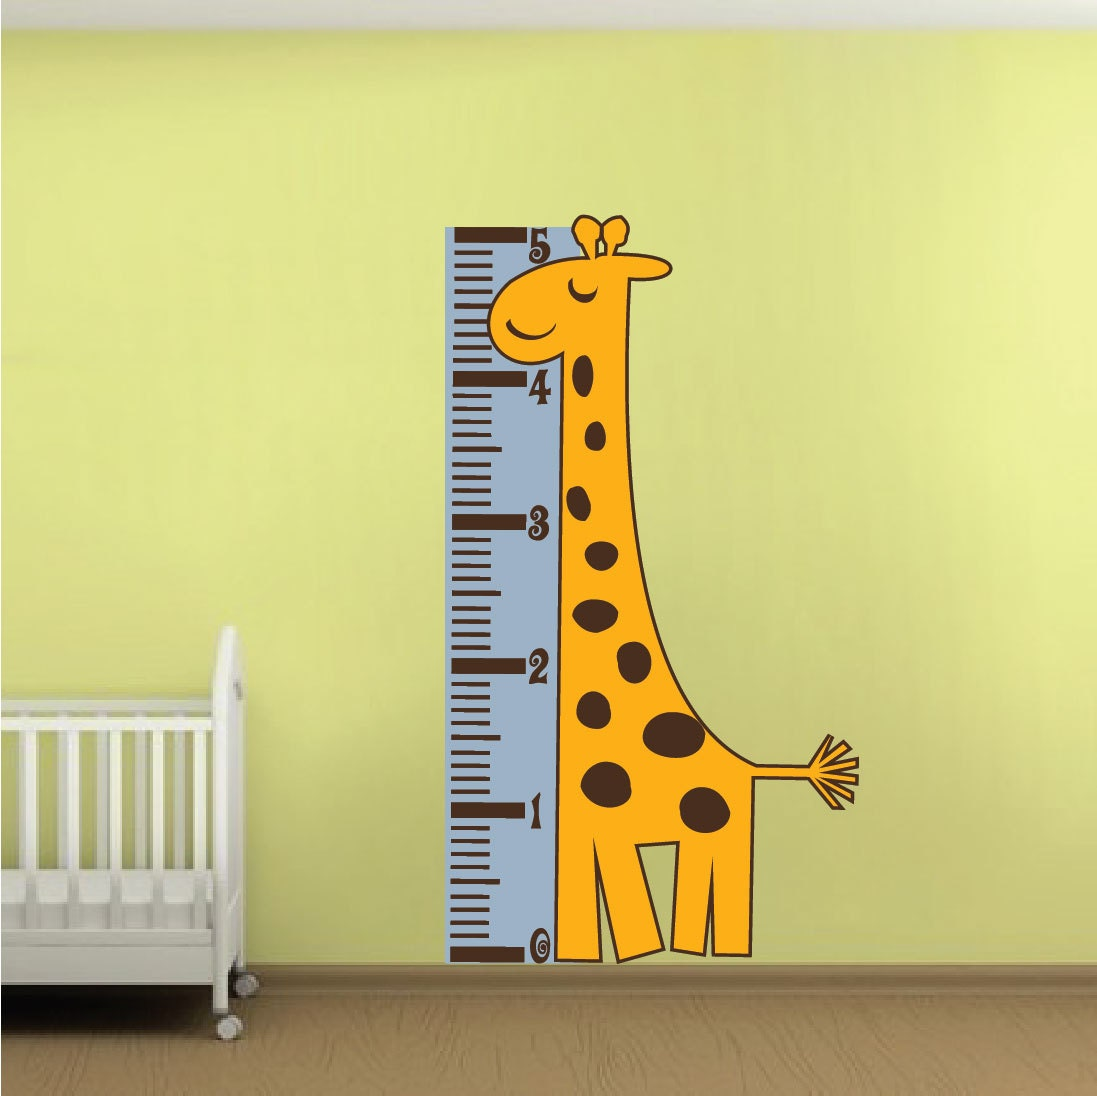 Measure chart wall decal giraffe height chart murals growth zoom geenschuldenfo Image collections